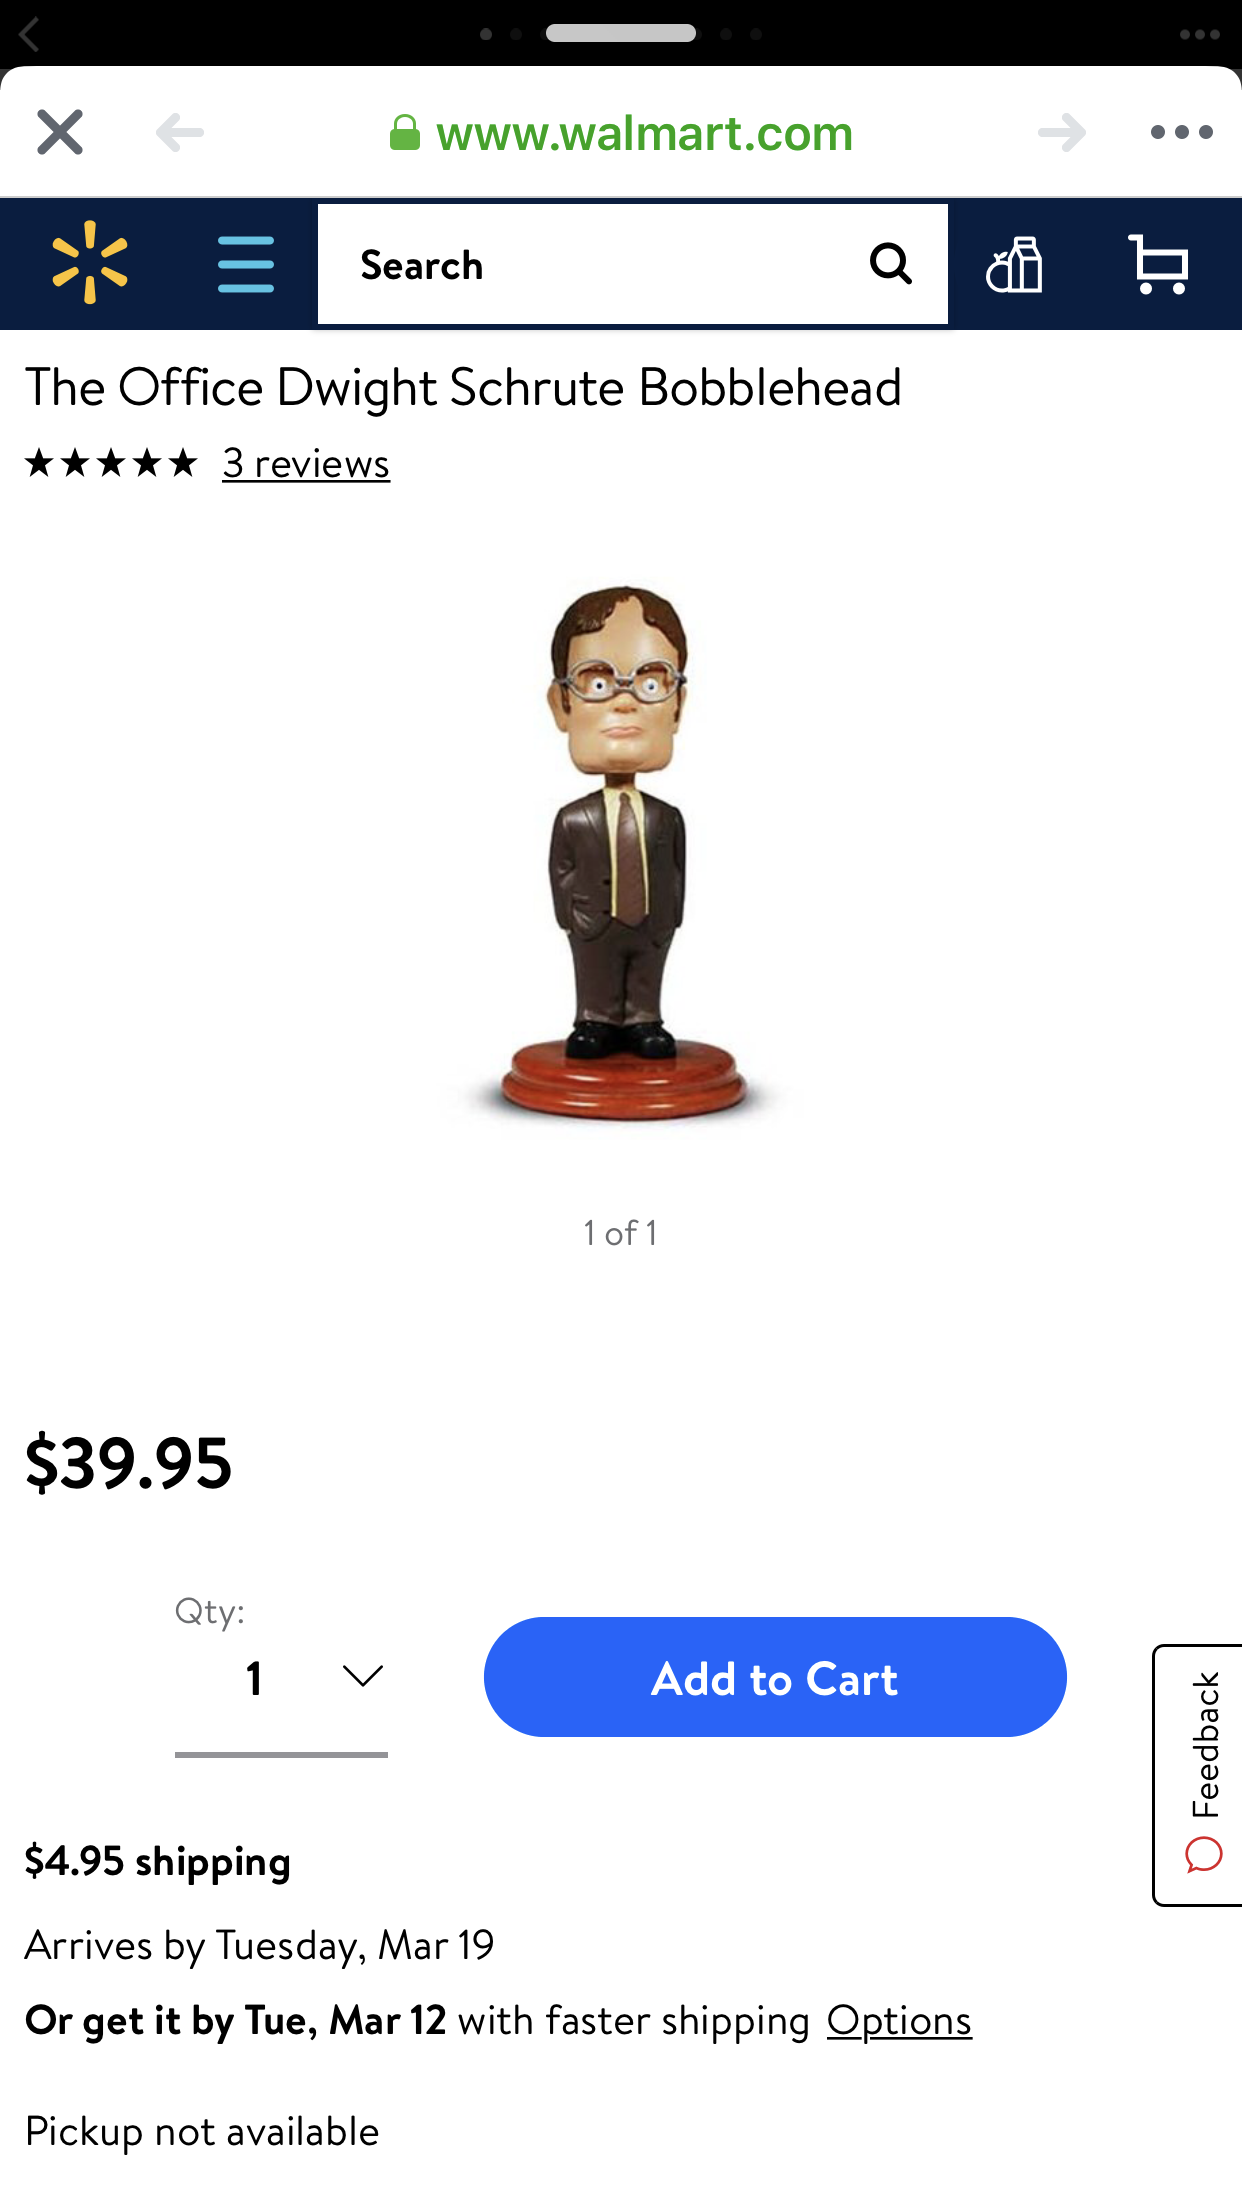 Pin By Kenedy Panosh On Gift Ideas The Office Dwight Schrute The Office Dwight Schrute Bobblehead